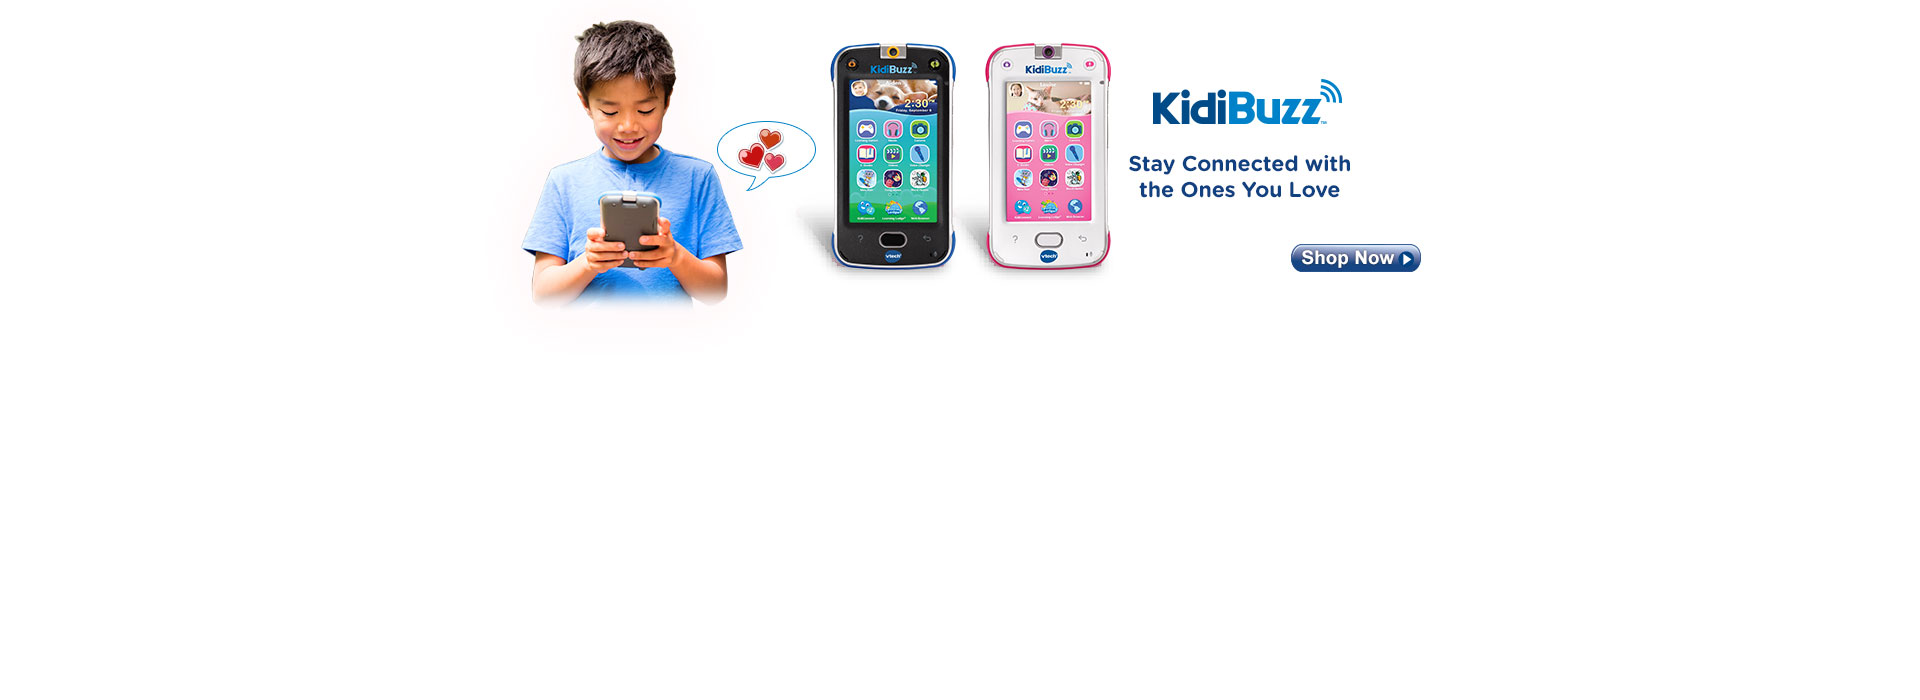 Connect, share and play with KidiBuzz, available in 2 colors! Shop now